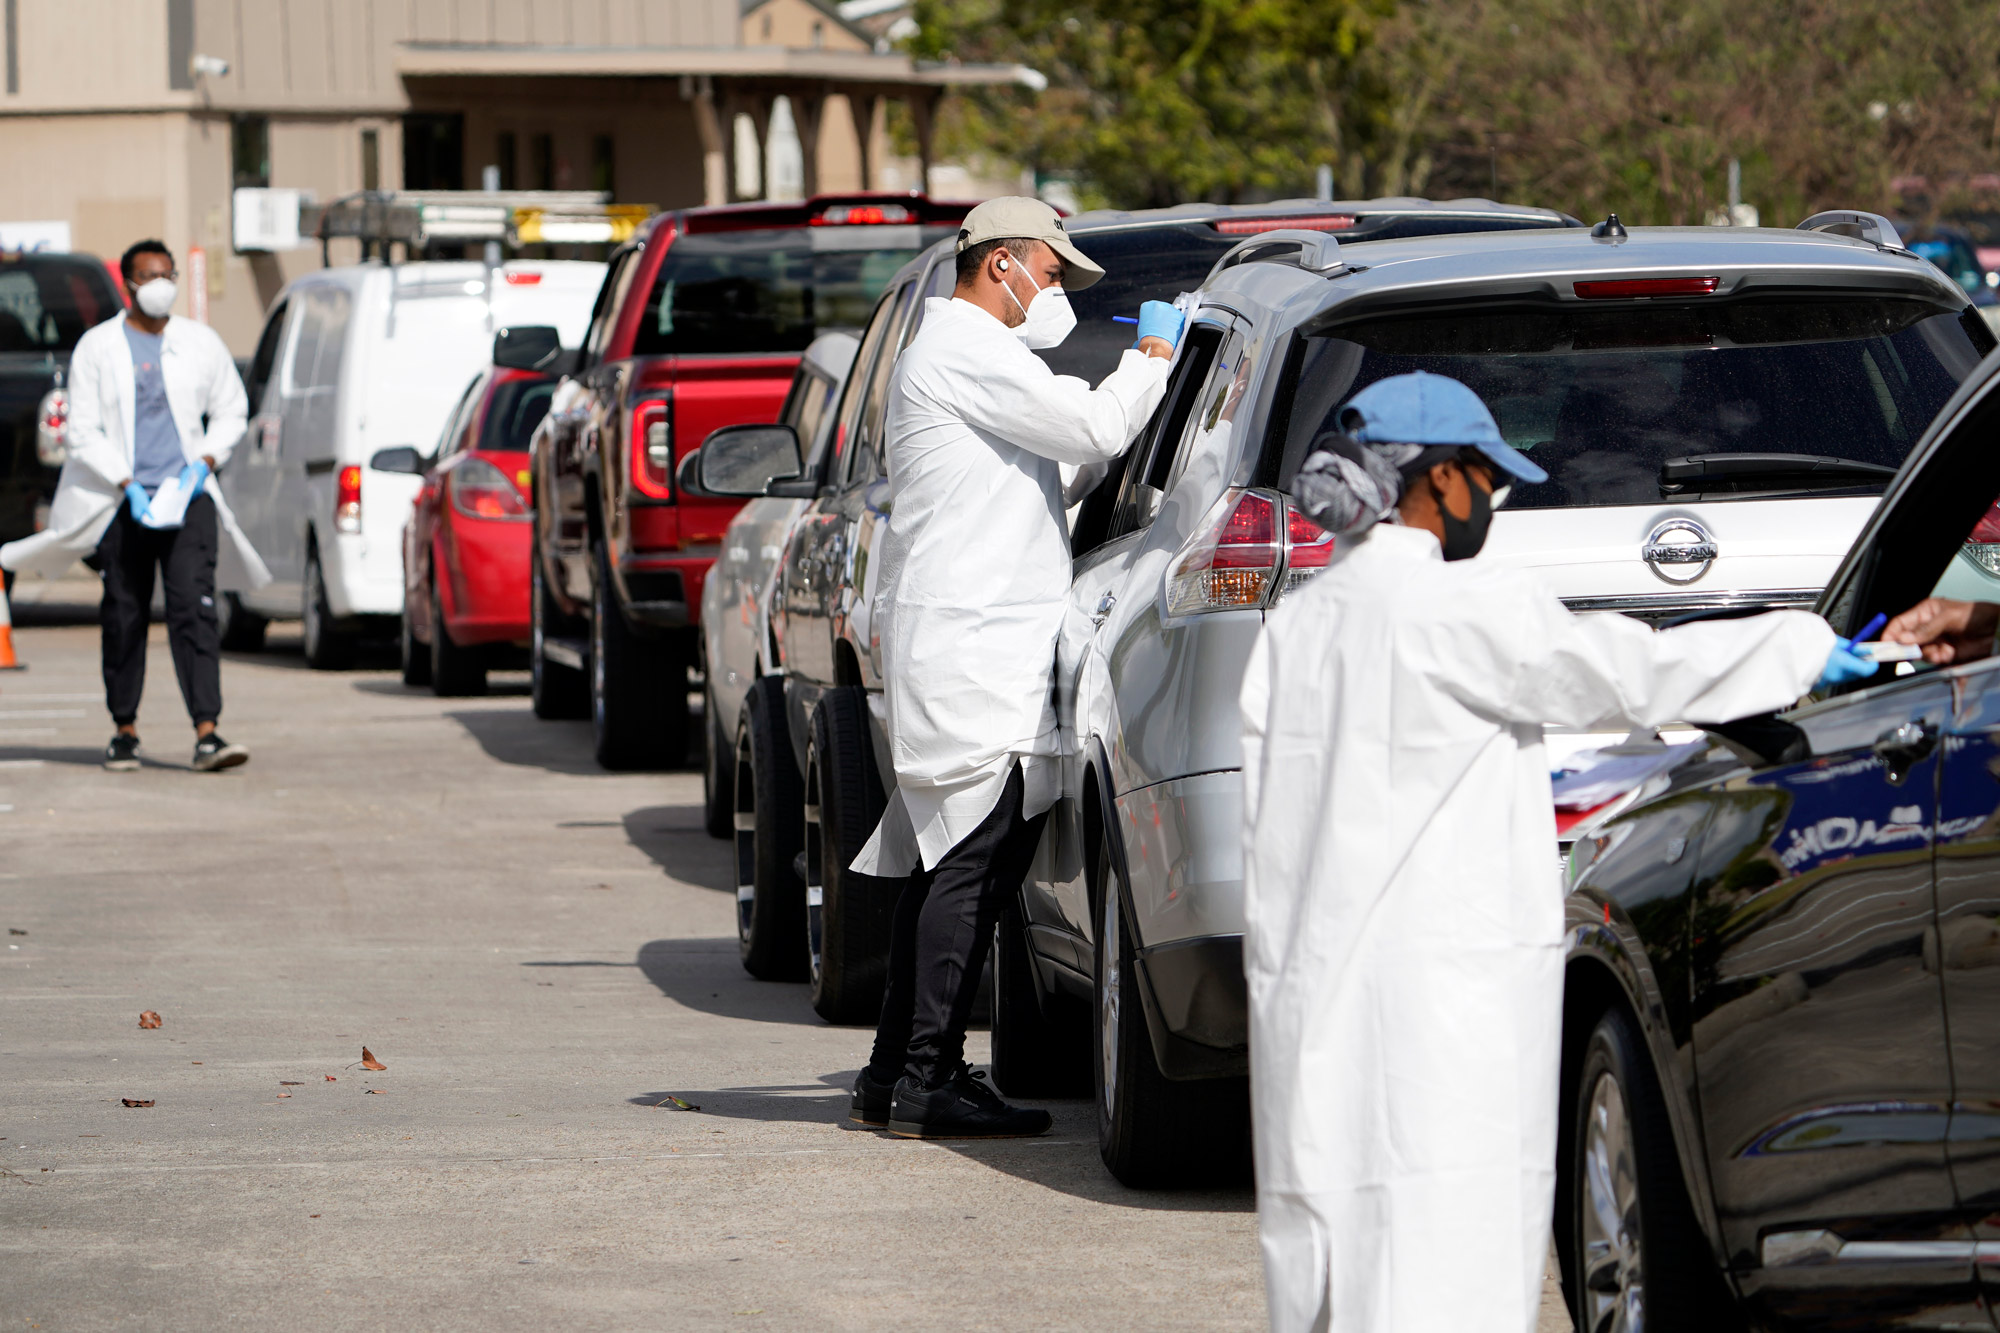 Healthcare workers process people waiting in line at a United Memorial Medical Center COVID-19 testing site on November 19 in Houston.